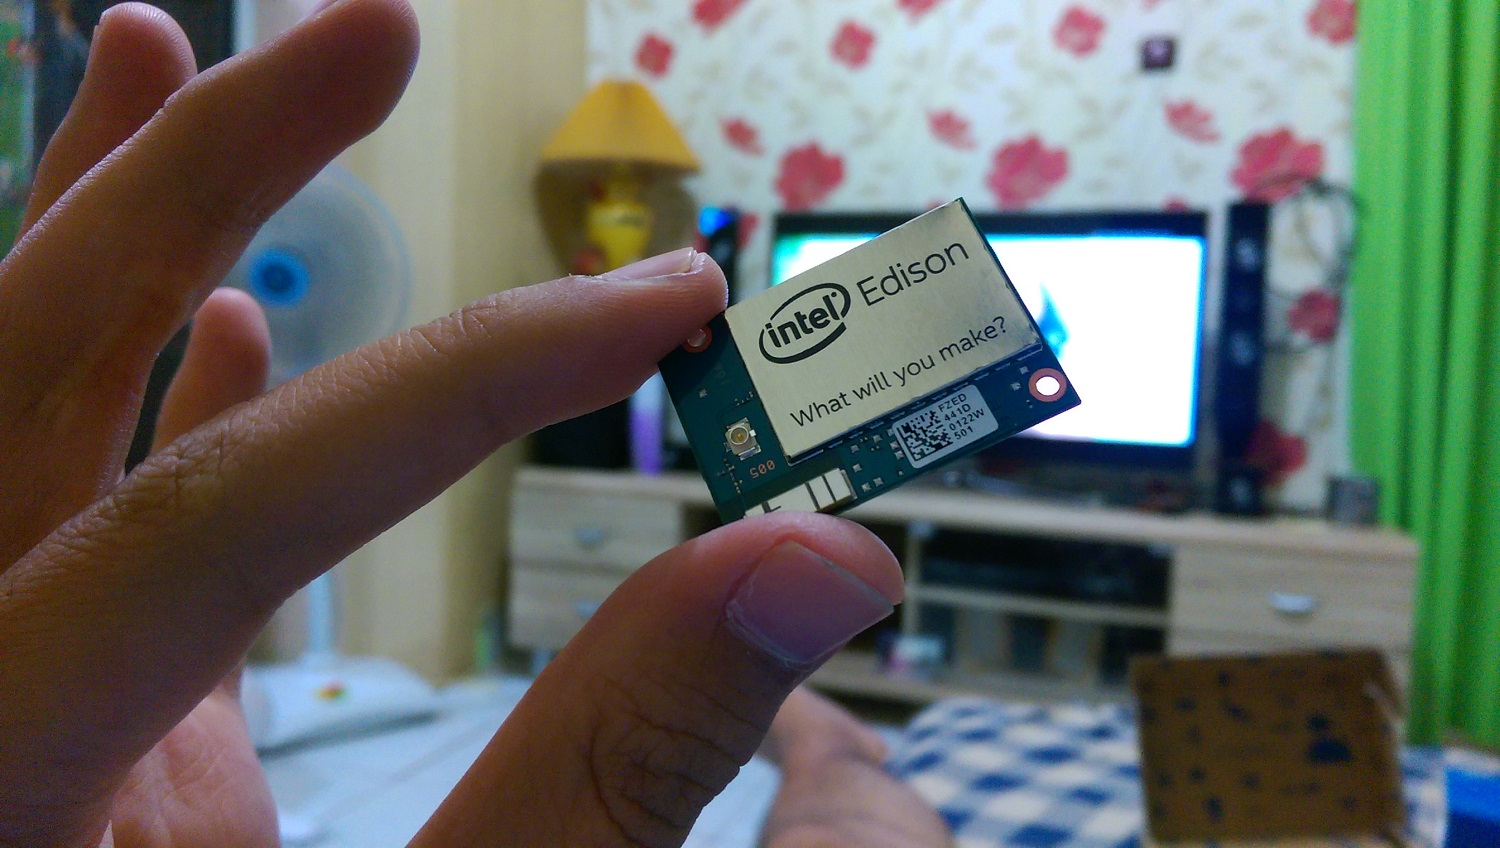 Picture of Intel Edison Simple Distance Sensor With Grove LED Bar Indicator and Buzzer